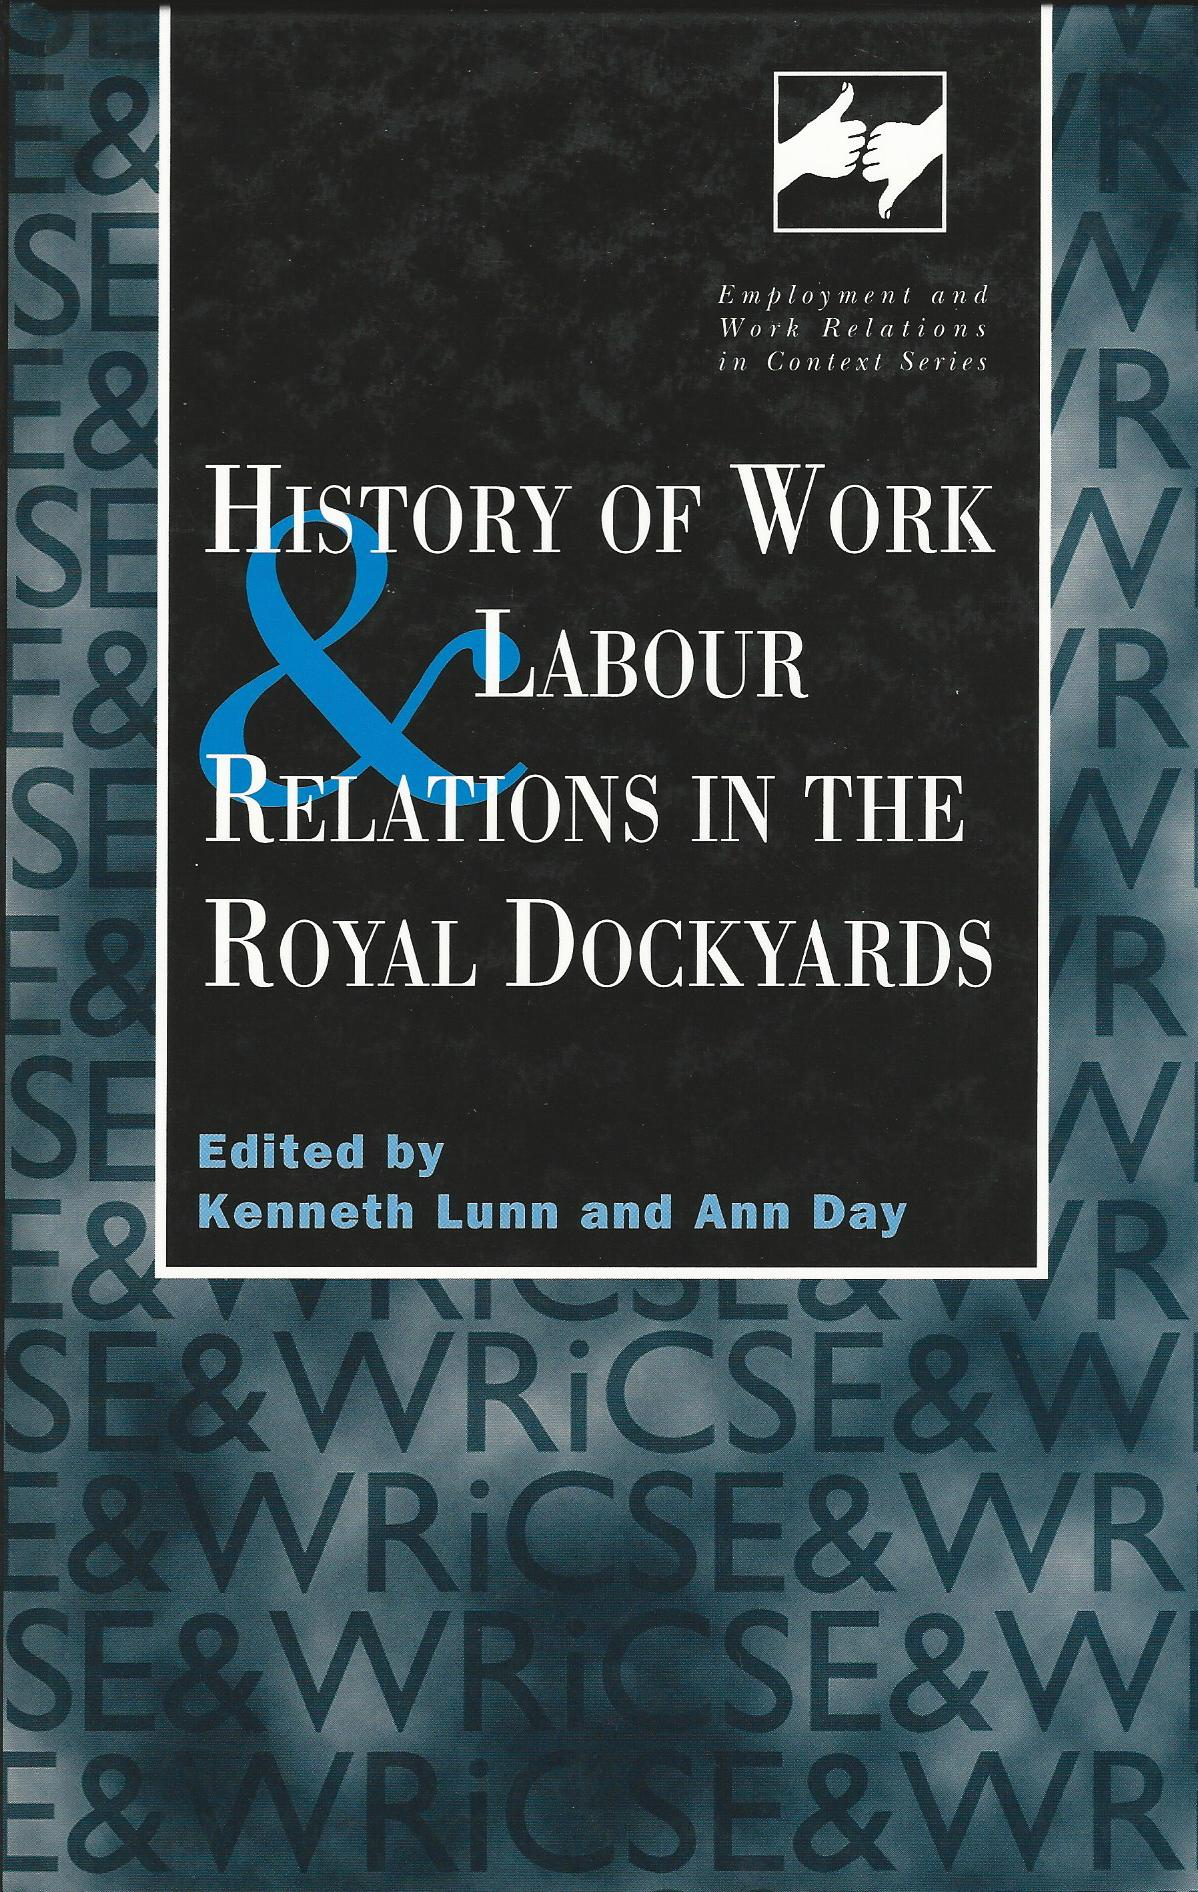 Image for History of Work and Labour Relations in the Royal Dockyards (Routledge Studies in Employment and Work Relations in Context)